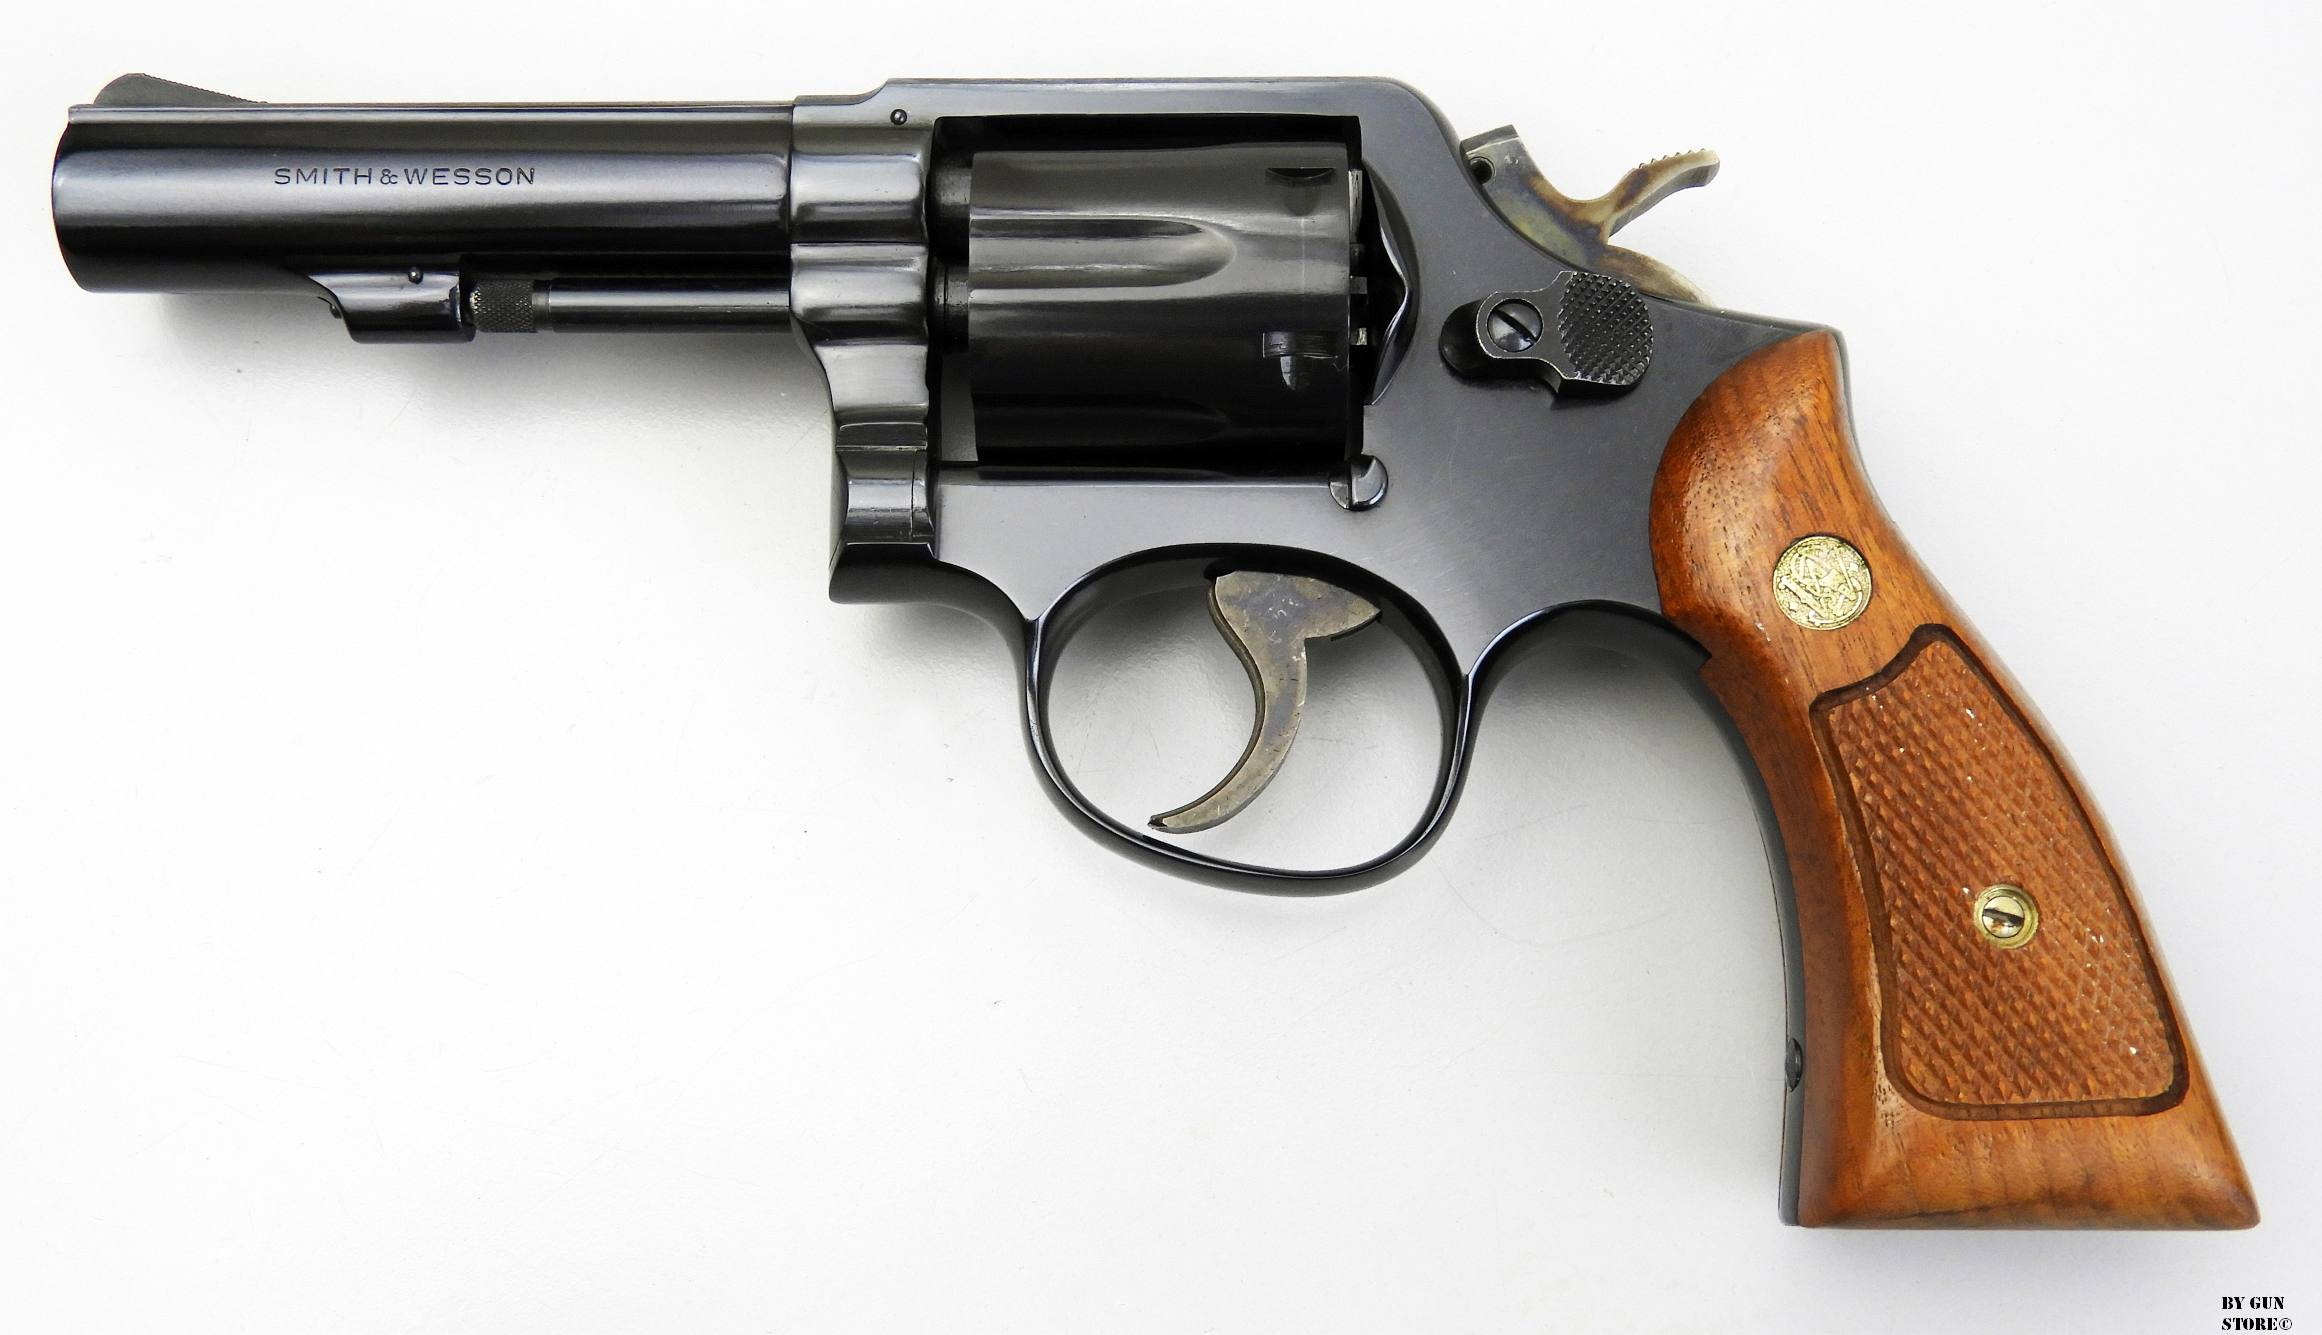 Конструкция револьвера «Smith & Wesson» 10